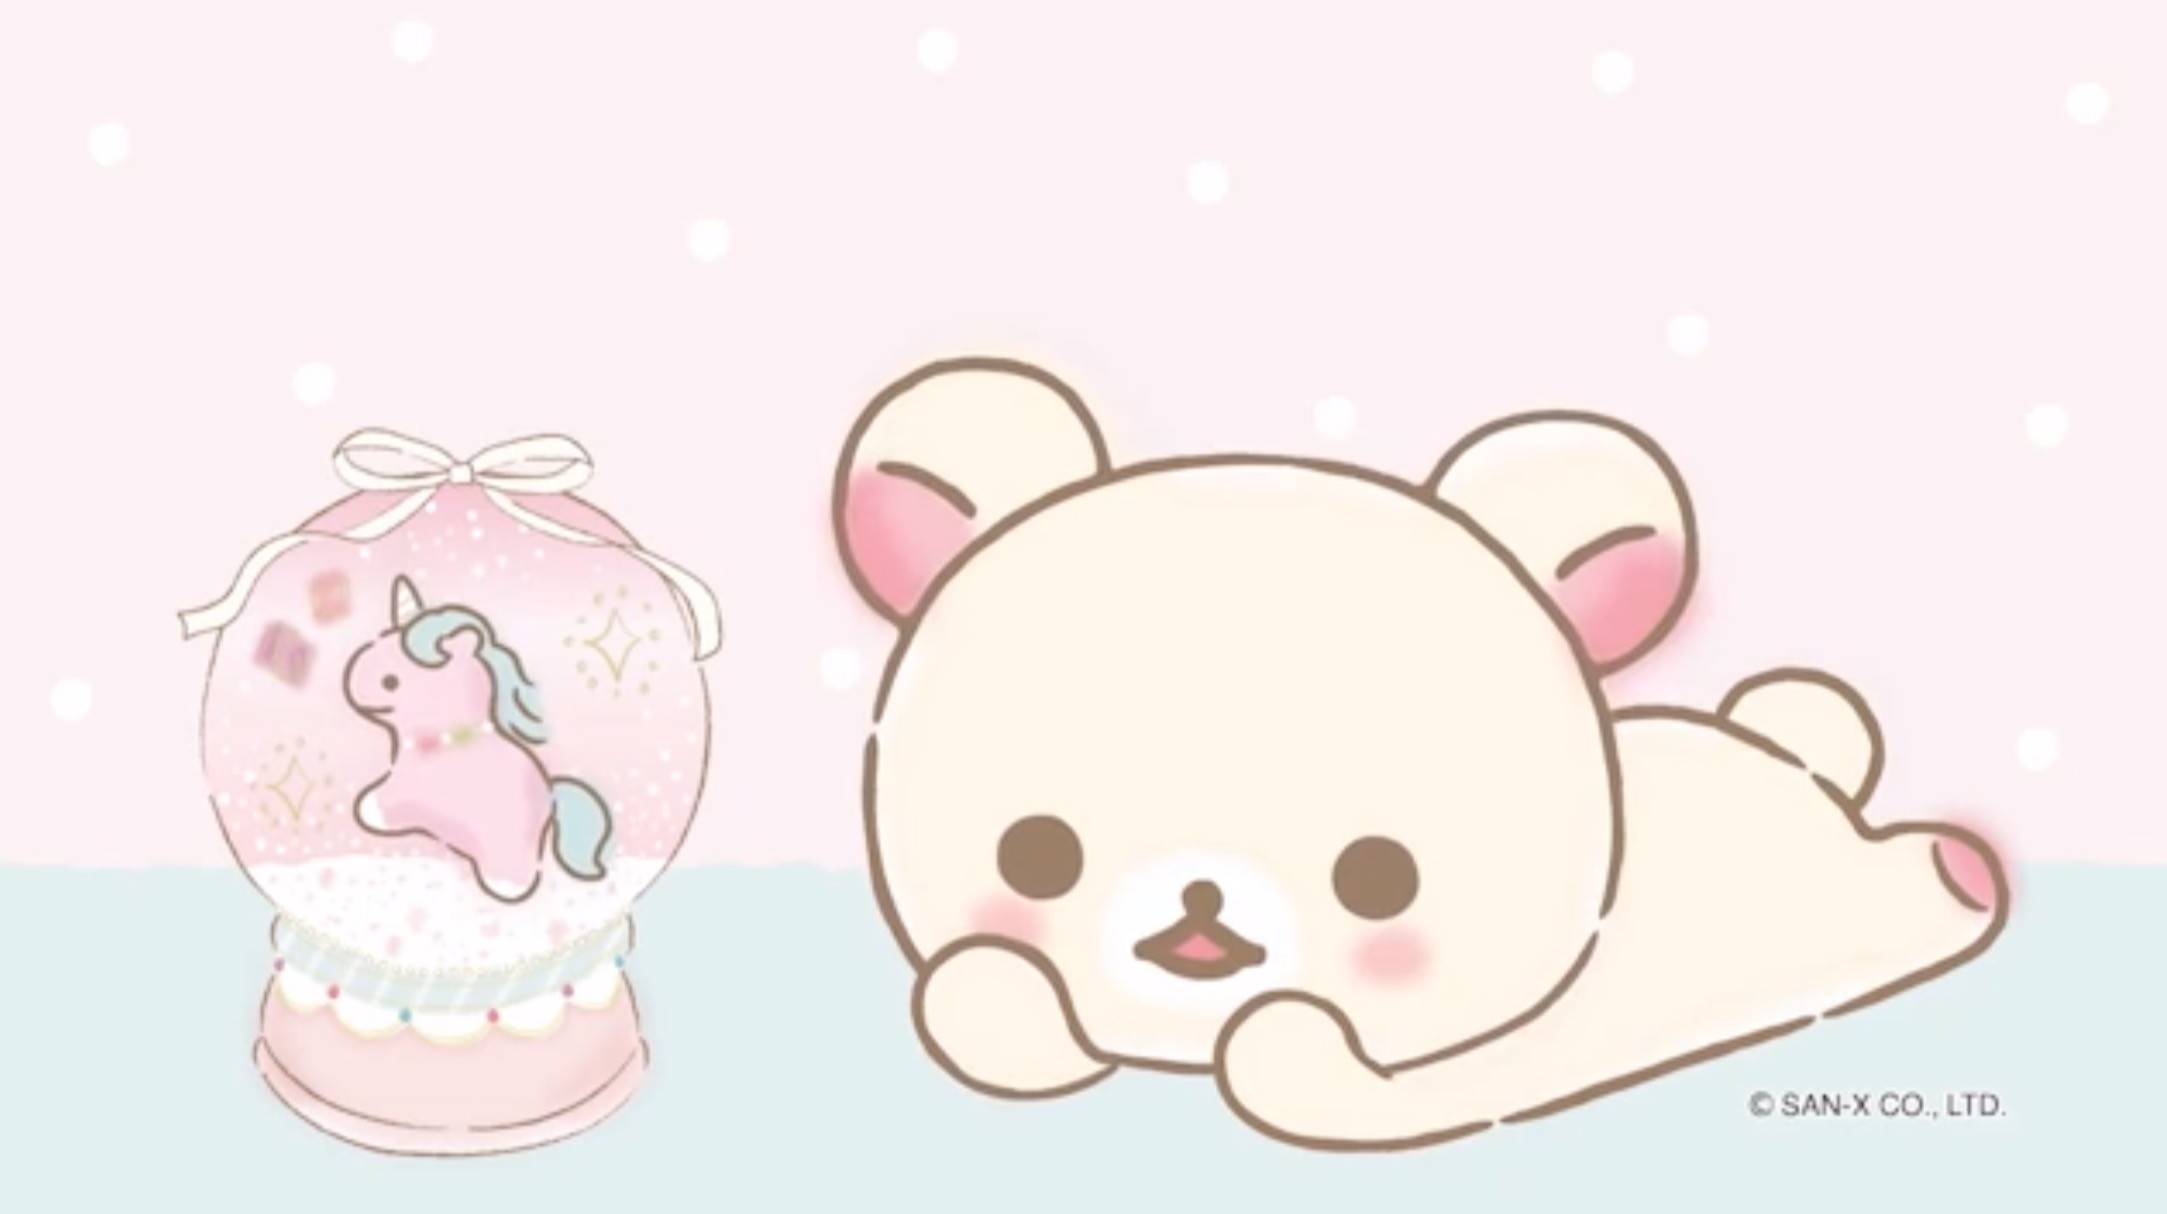 2167x1214 749 best rilakkuma images on Pinterest | Sanrio, Rilakkuma wallpaper and  Rilakkuma